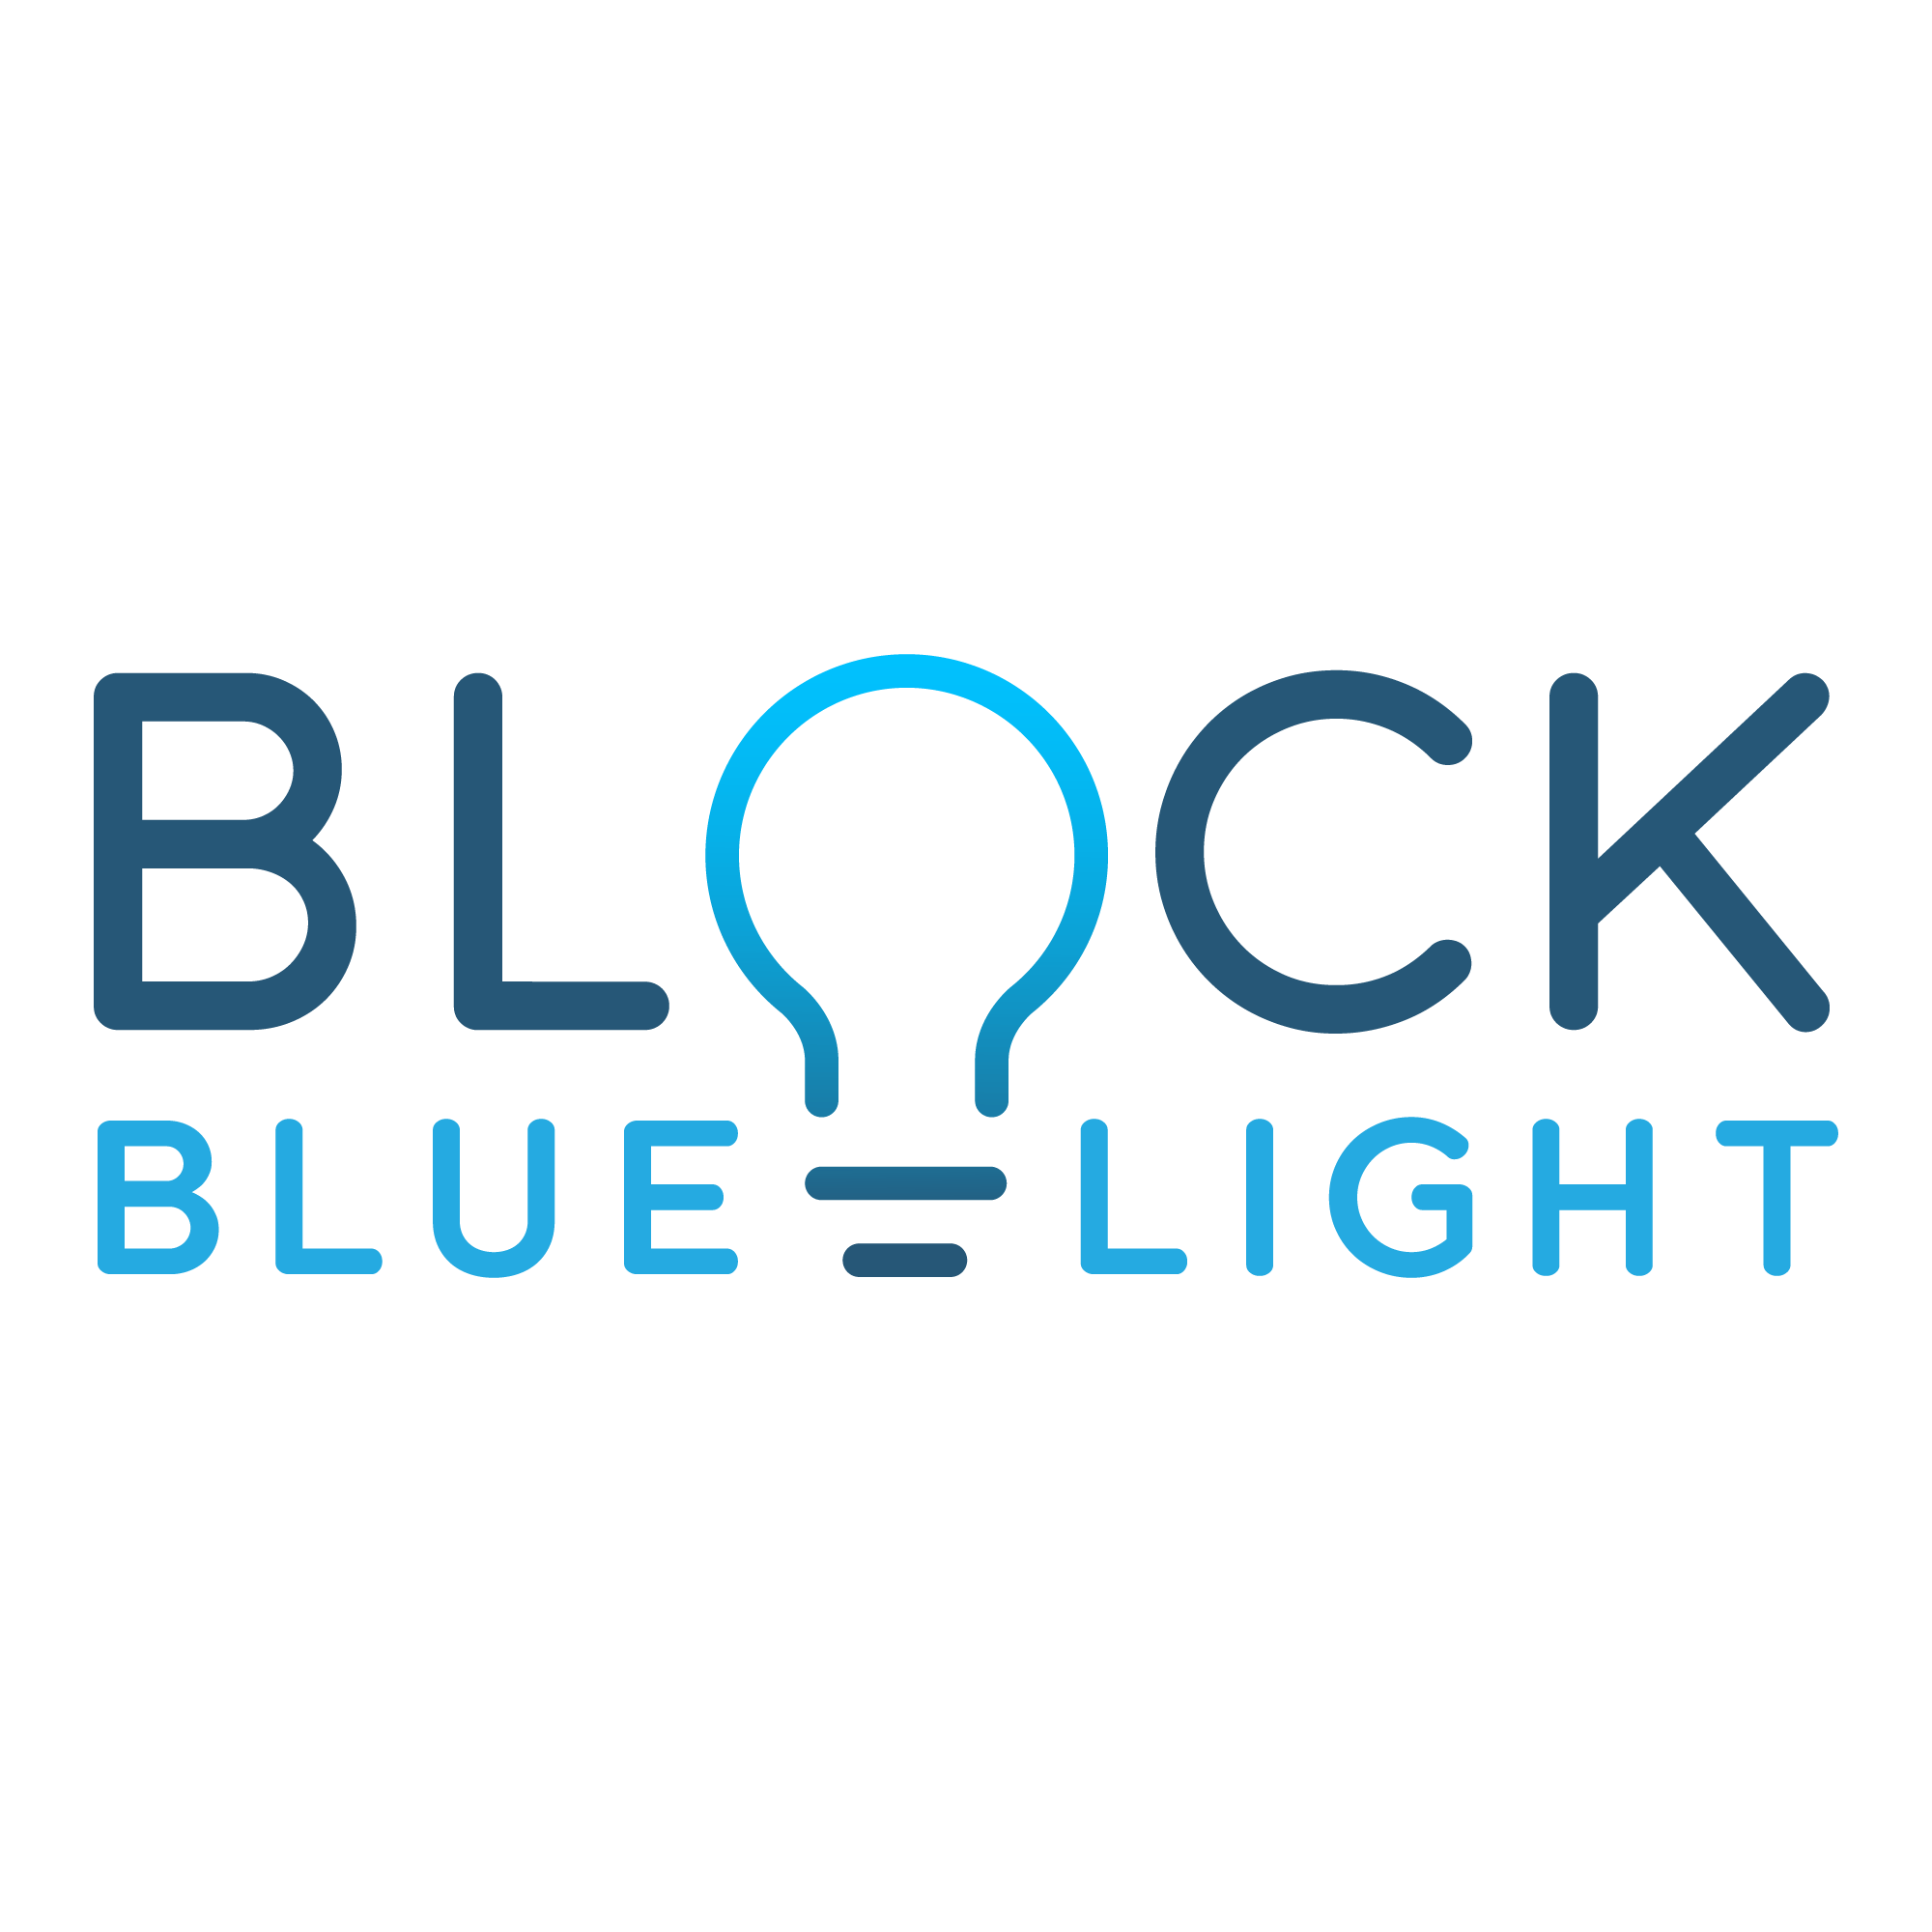 Blue Light Glasses Filters Light Frequencies Which Disrupt Natural Sleep Rhythms